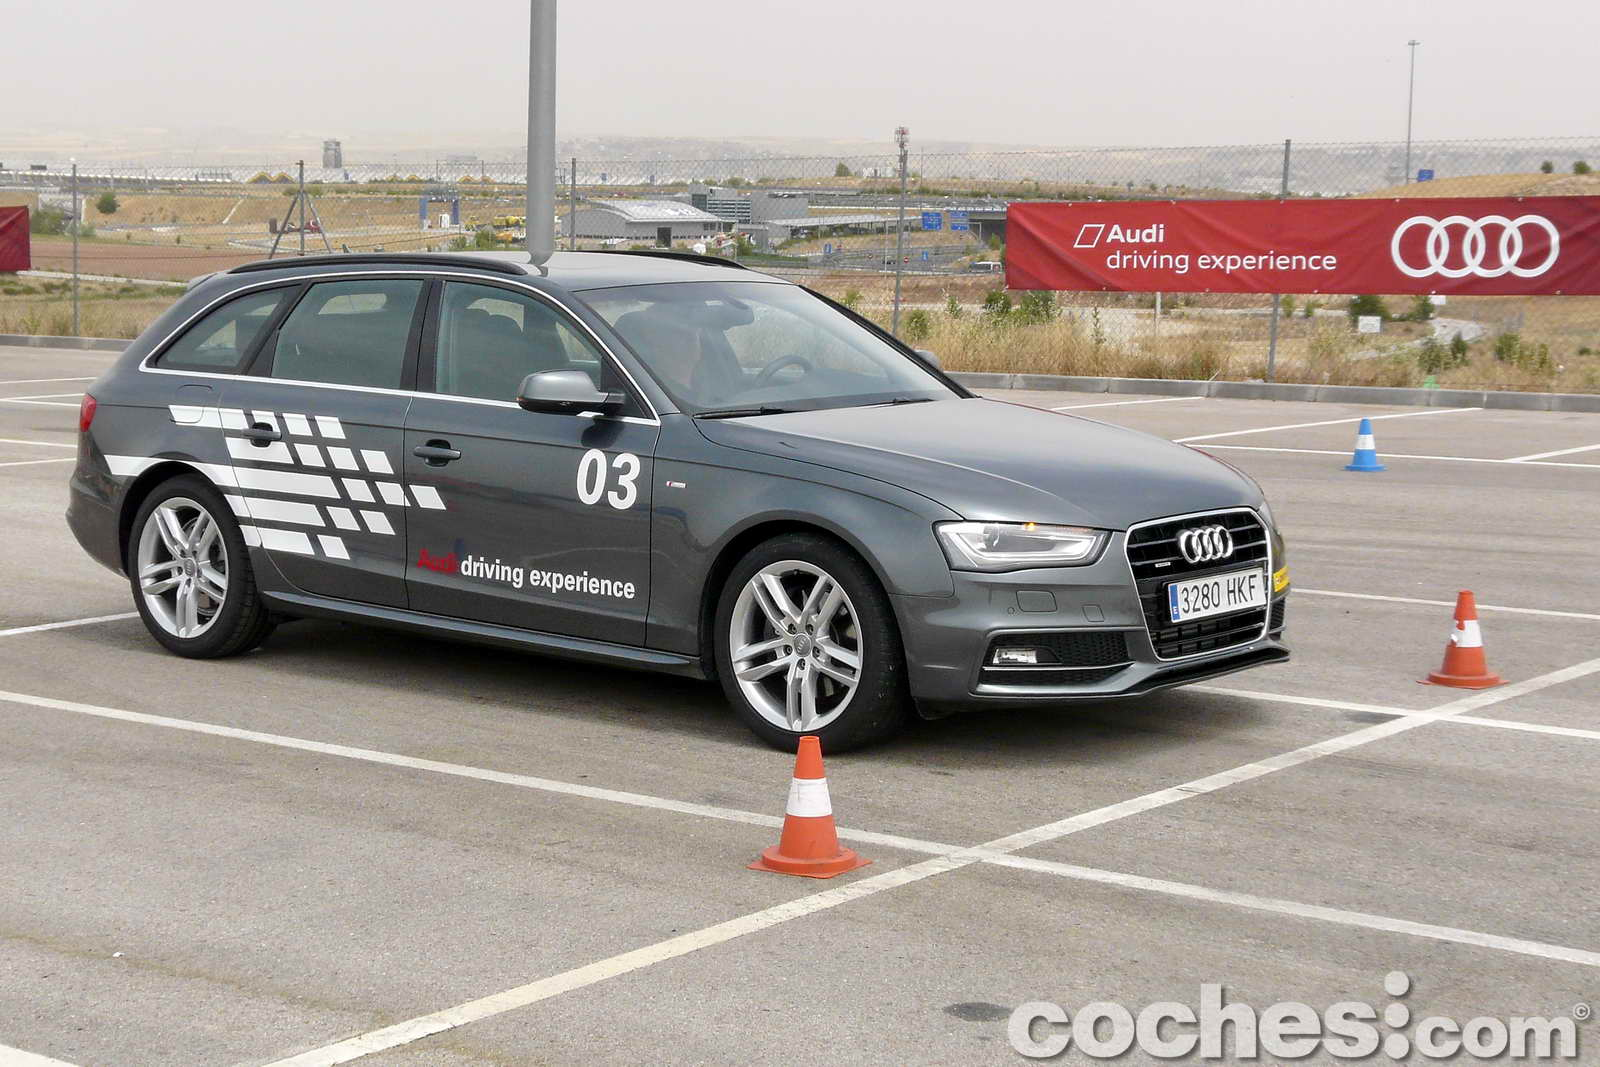 Audi_Driving_Experience_01